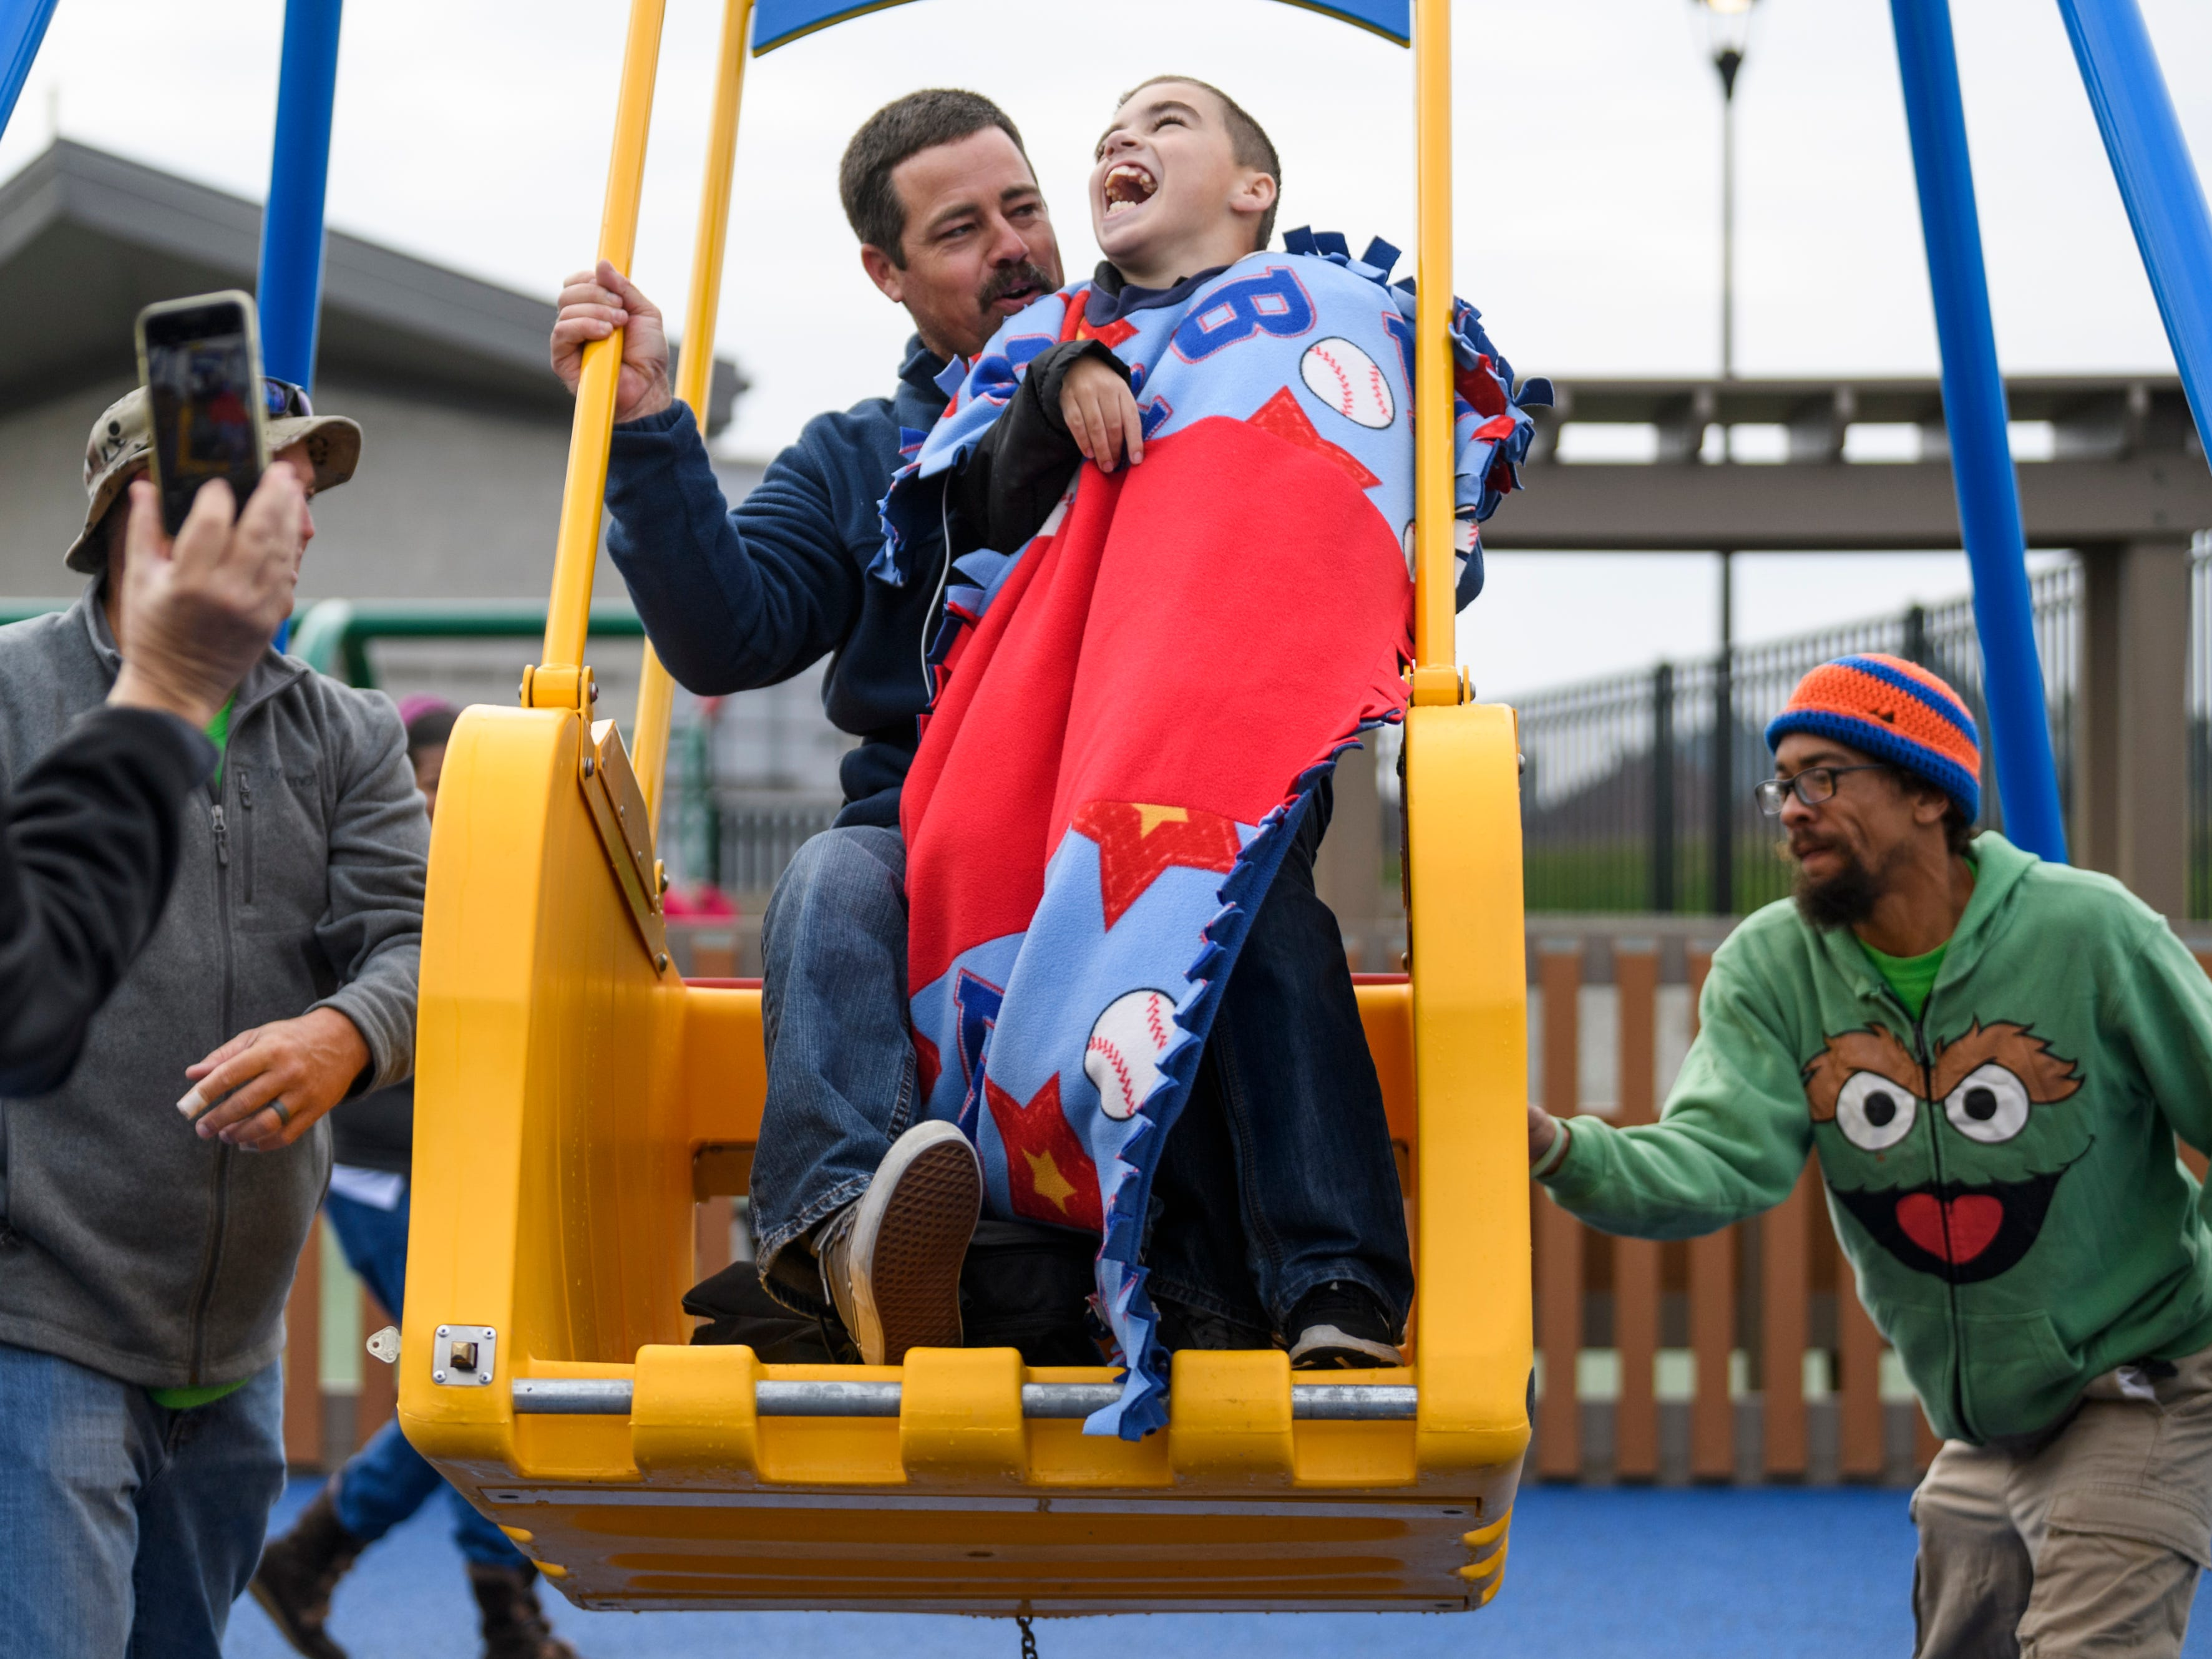 Dan Masterson, center left, and his son Roman Masterson, 11, center right, test out the Liberty Swing, which allows disabled children to hook their wheelchairs into the platform, at the new Mickey's Kingdom playground in downtown Evansville, Ind., Saturday morning, Oct. 27, 2018. The swing was made and shipped from Sydney, Australia.